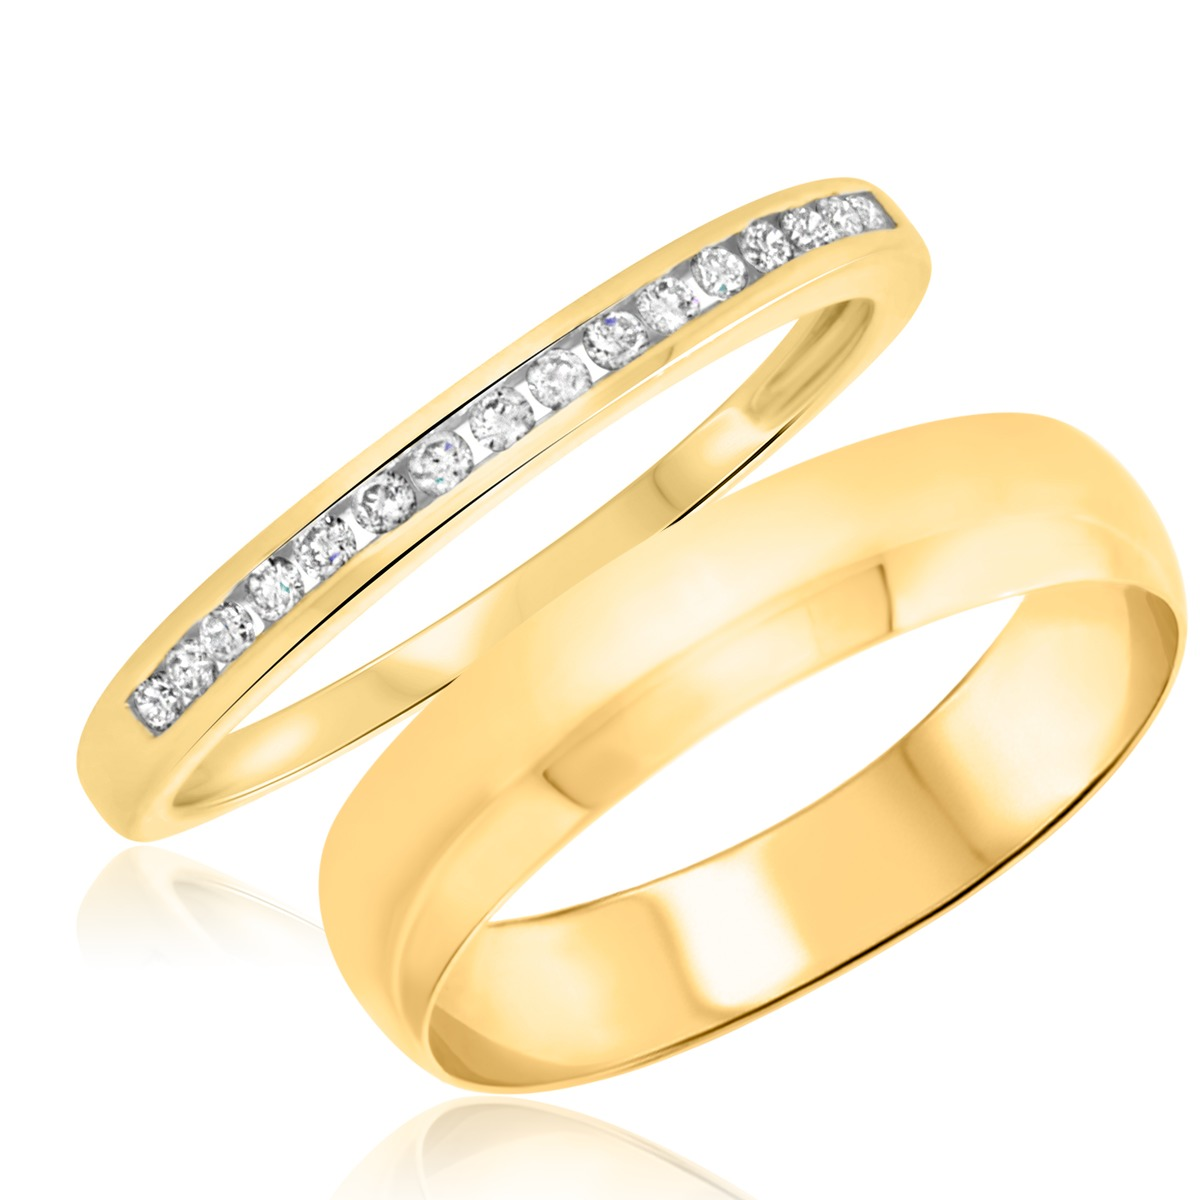 1/7 Carat T.W. Round Cut Diamond His and Hers Wedding Band Set 14K Yellow Gold